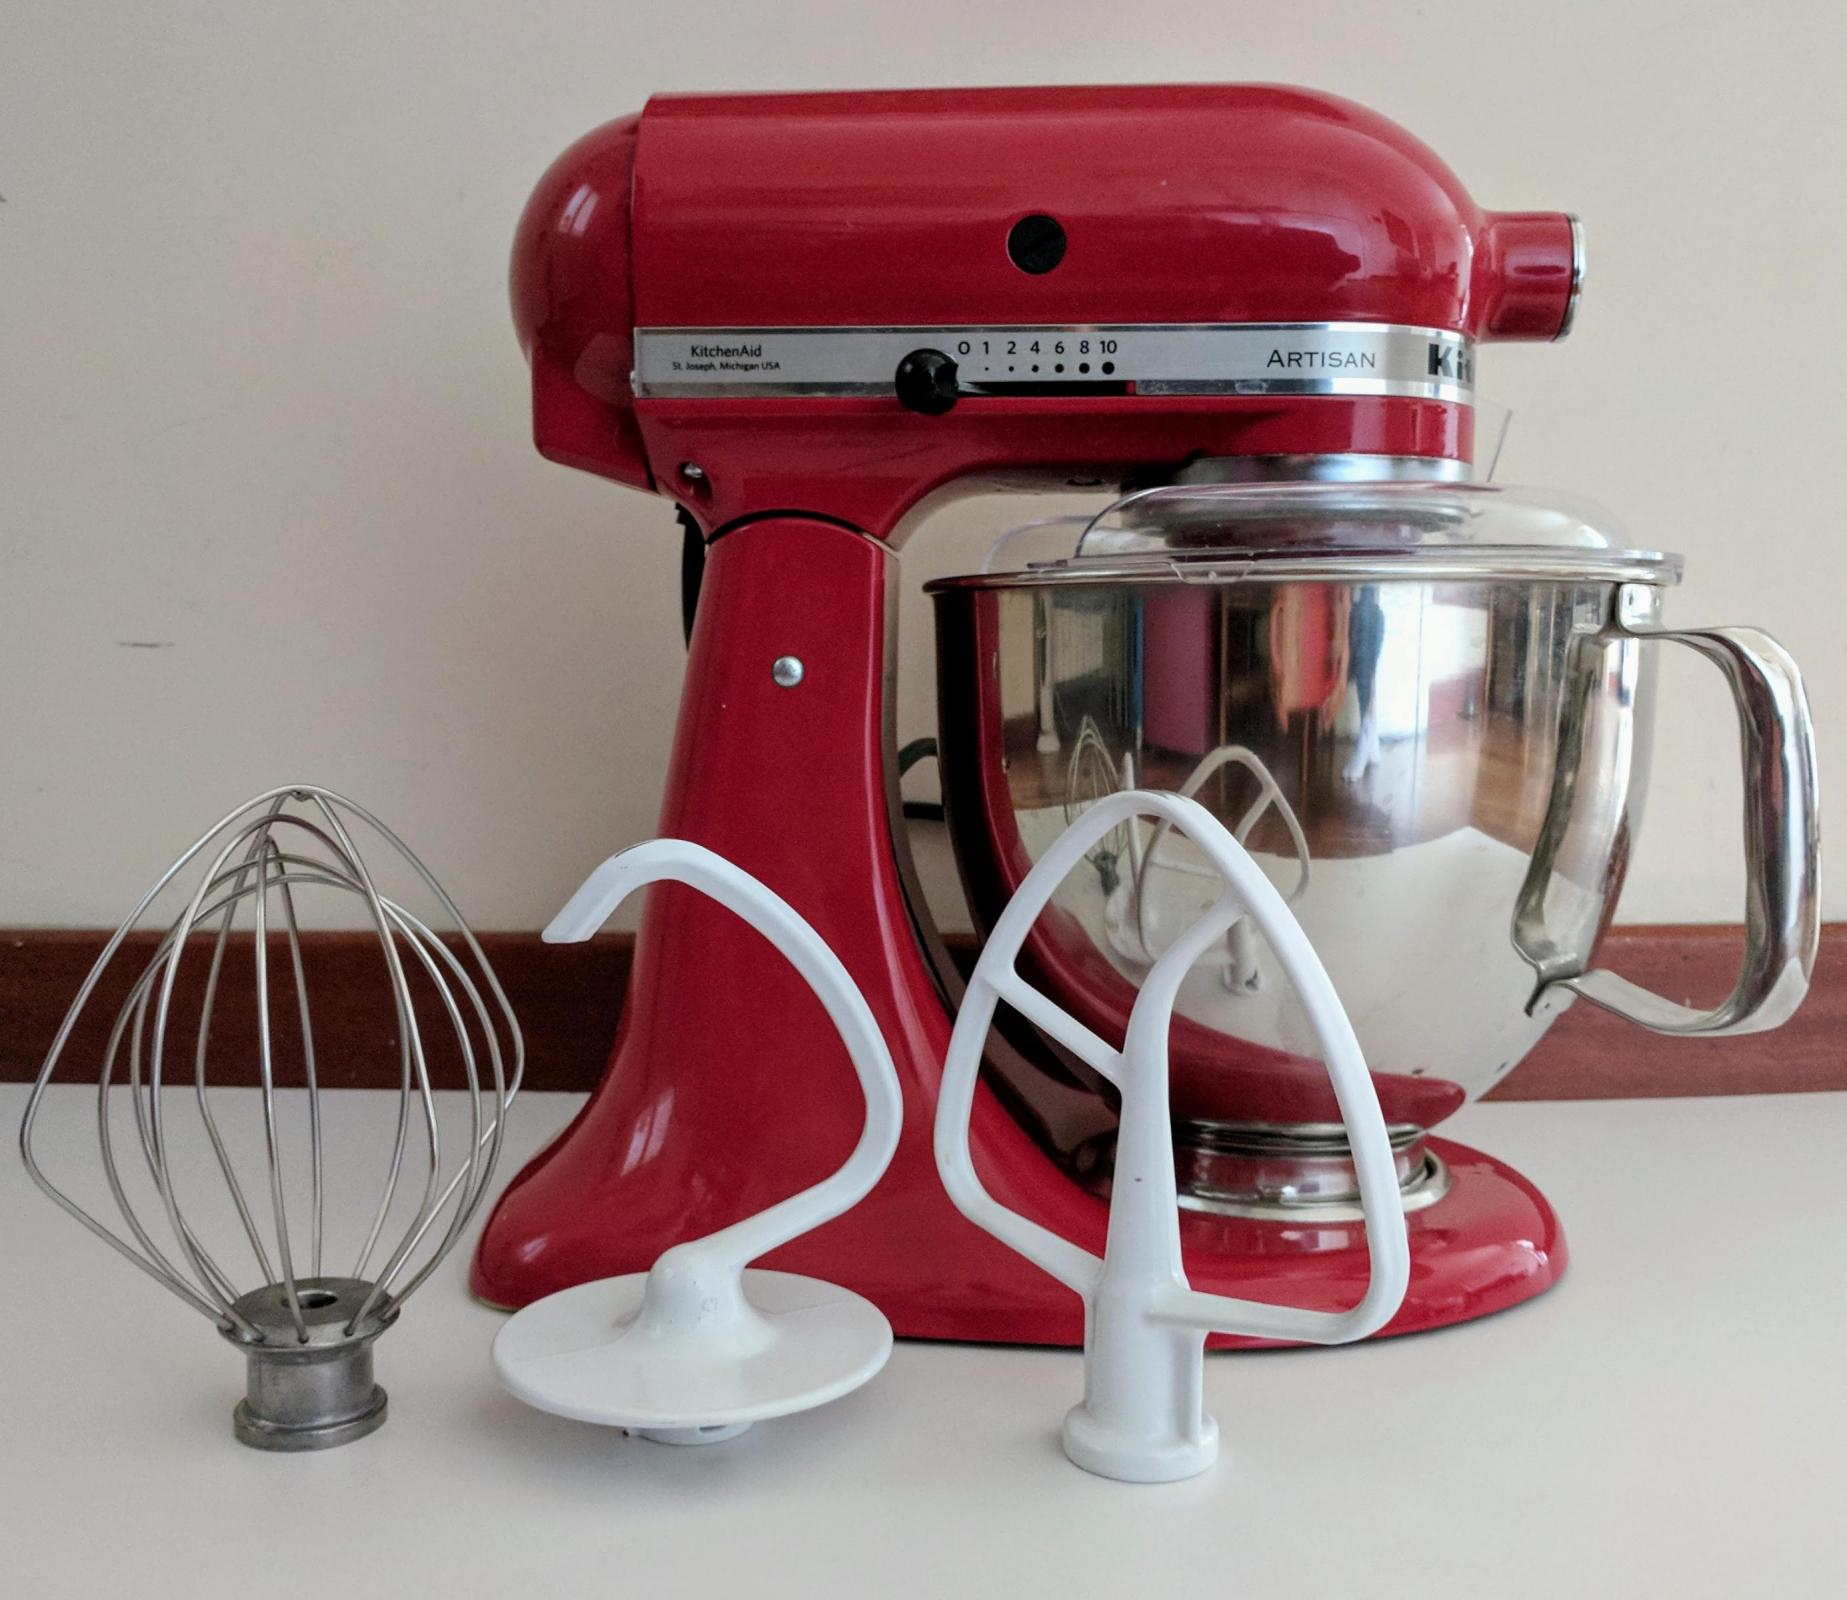 giveaway aid artisan review concept kitchenaid mixer and u kitchen of popular aflk mini stand amazing